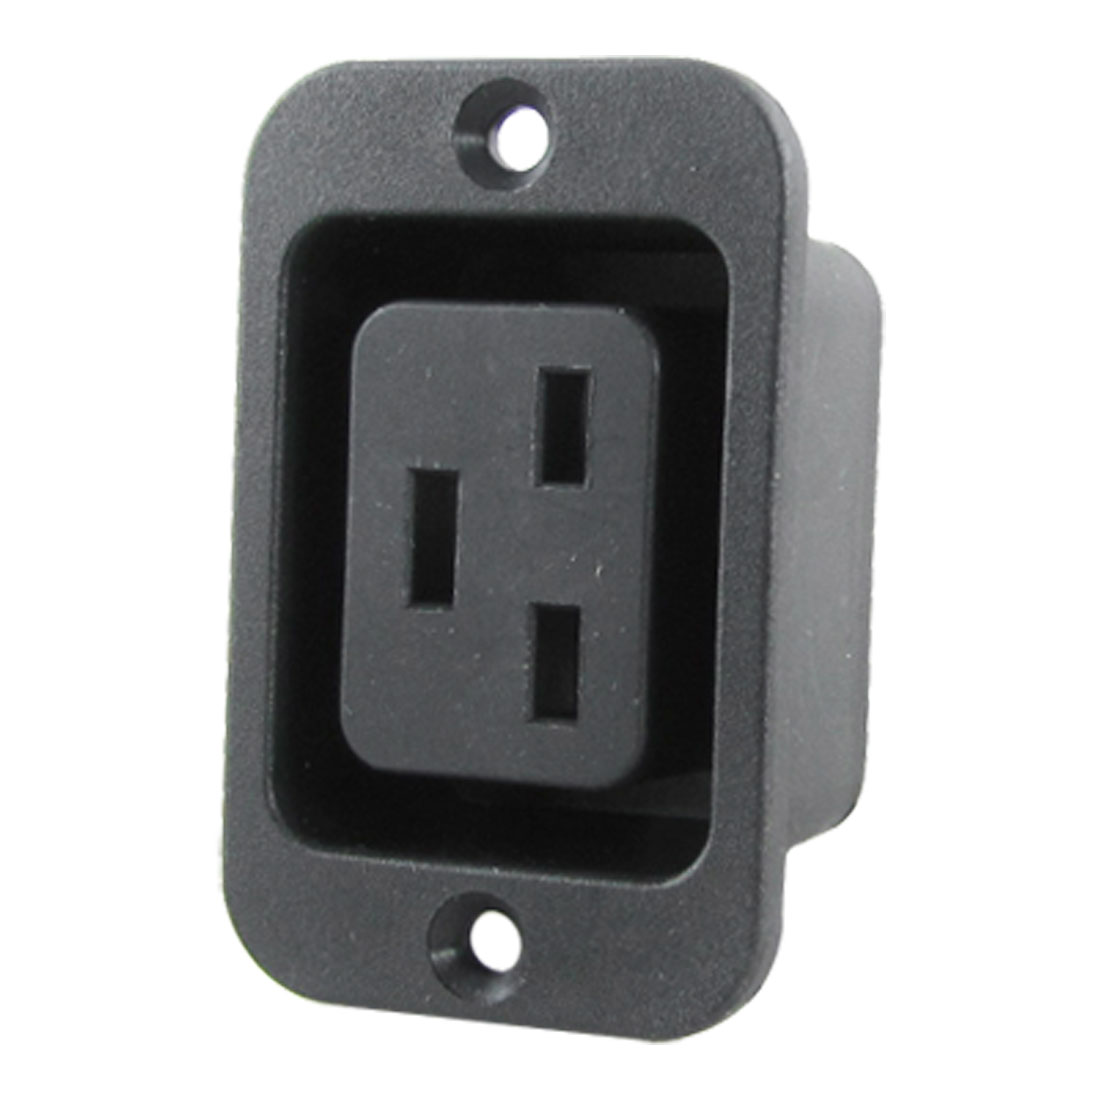 AC 250V 16A IEC 320 C19 Panel Mount Plug Connector Socket